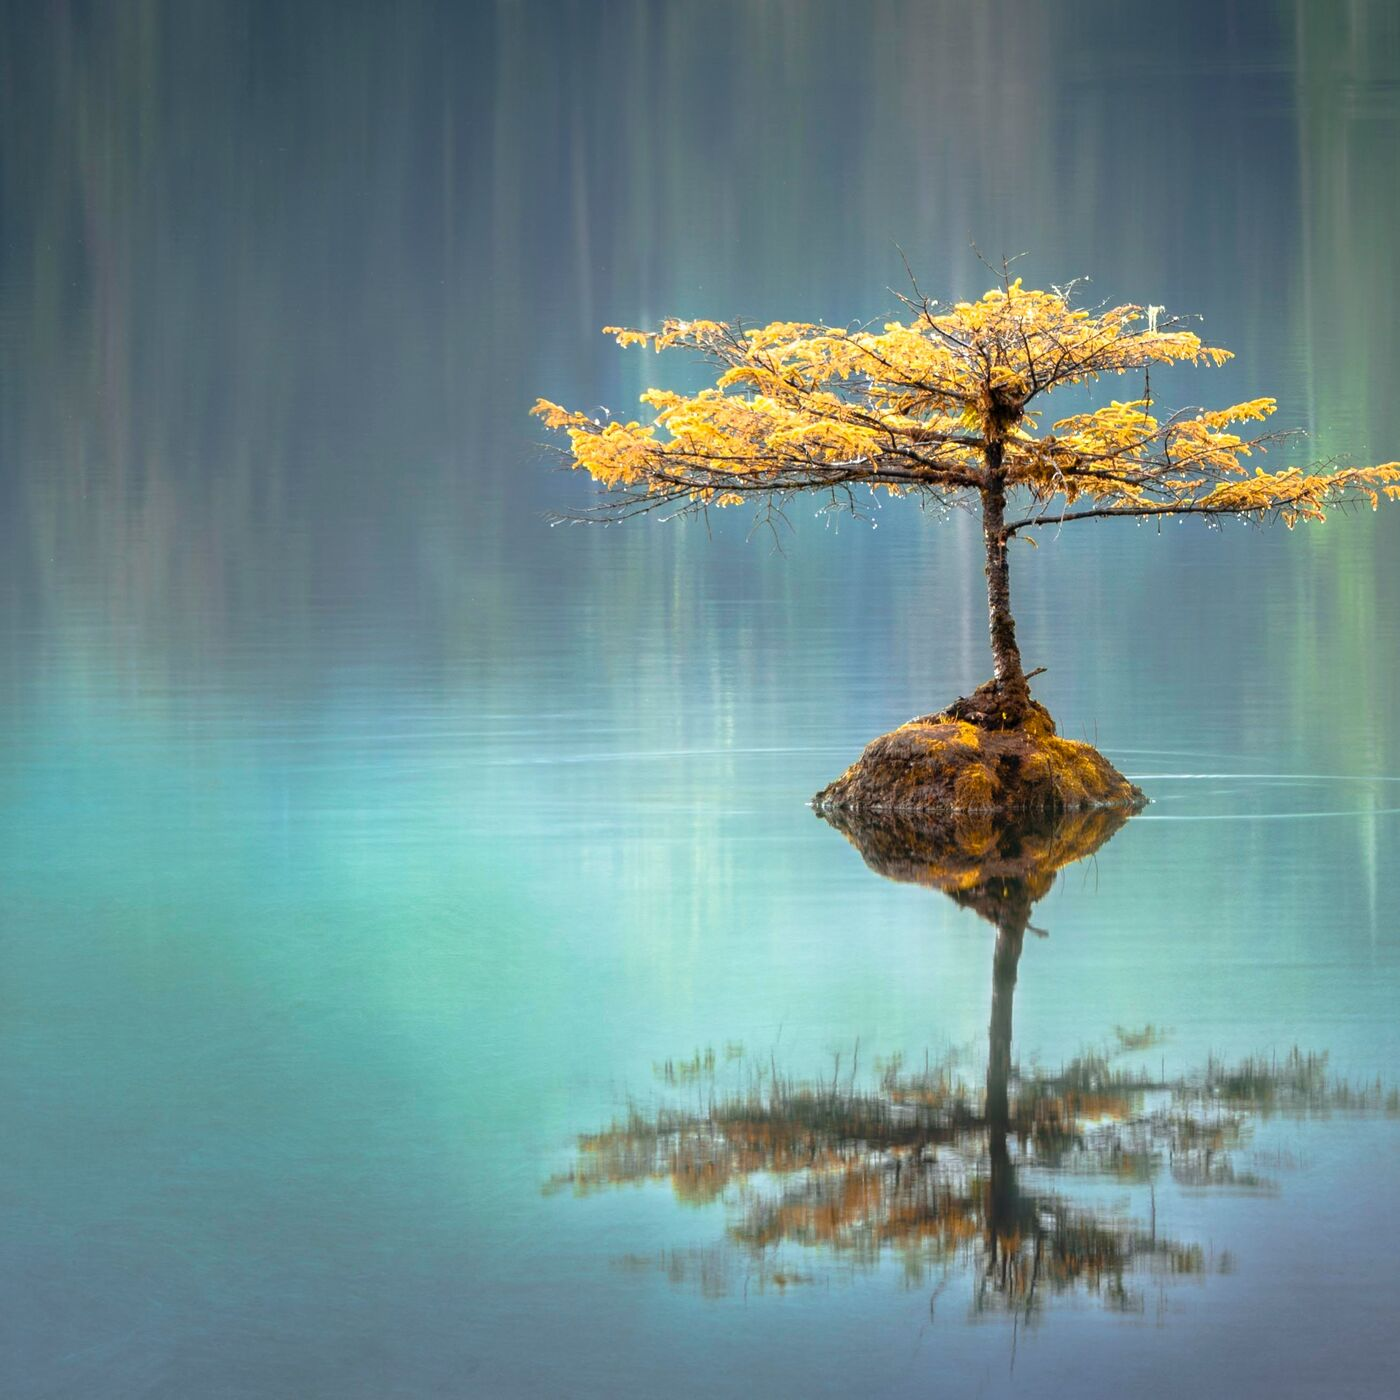 Tao Te Ching Verse 76: Staying Compassionate